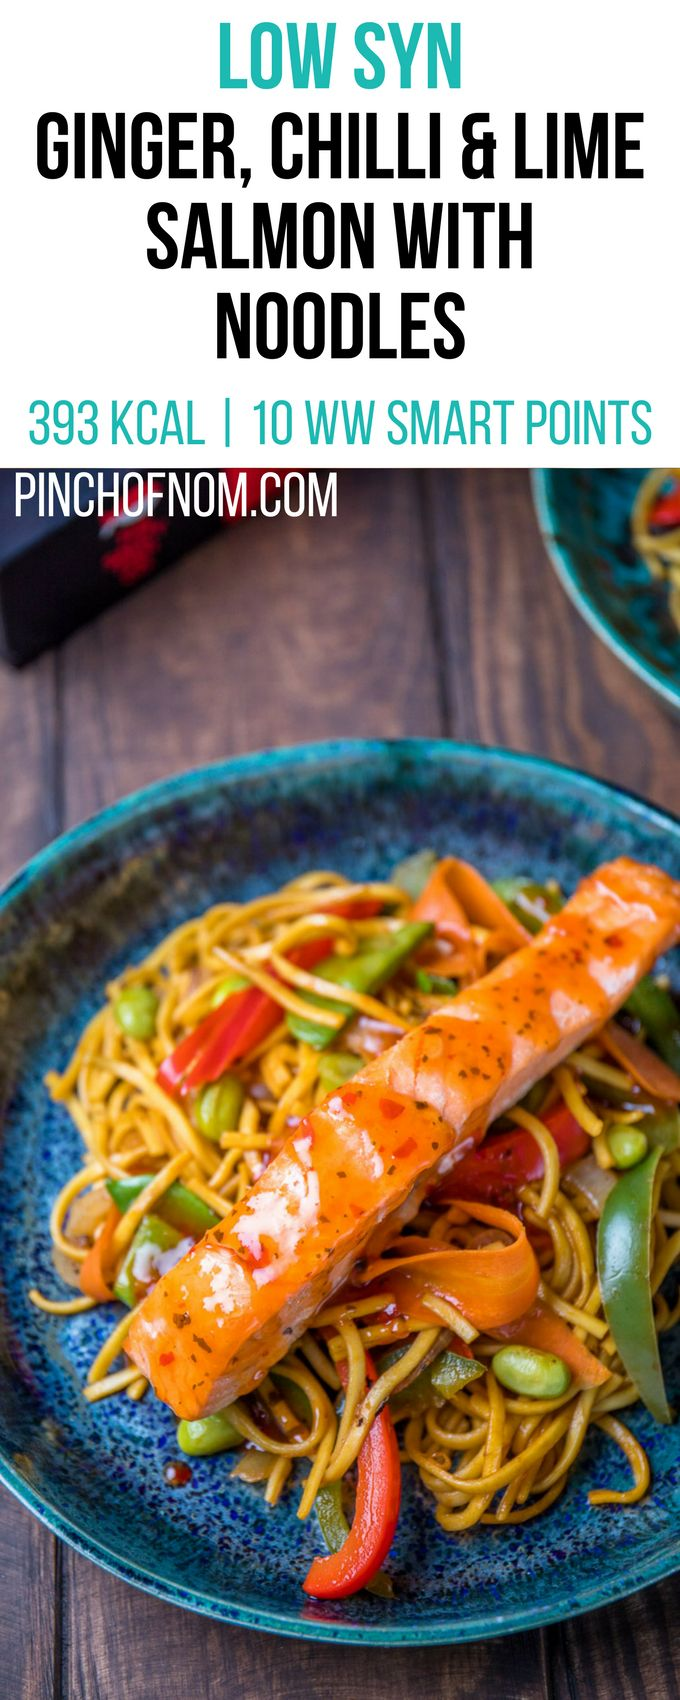 Low Syn Ginger, Chilli & Lime Salmon with Noodles | Pinch Of Nom Slimming World …